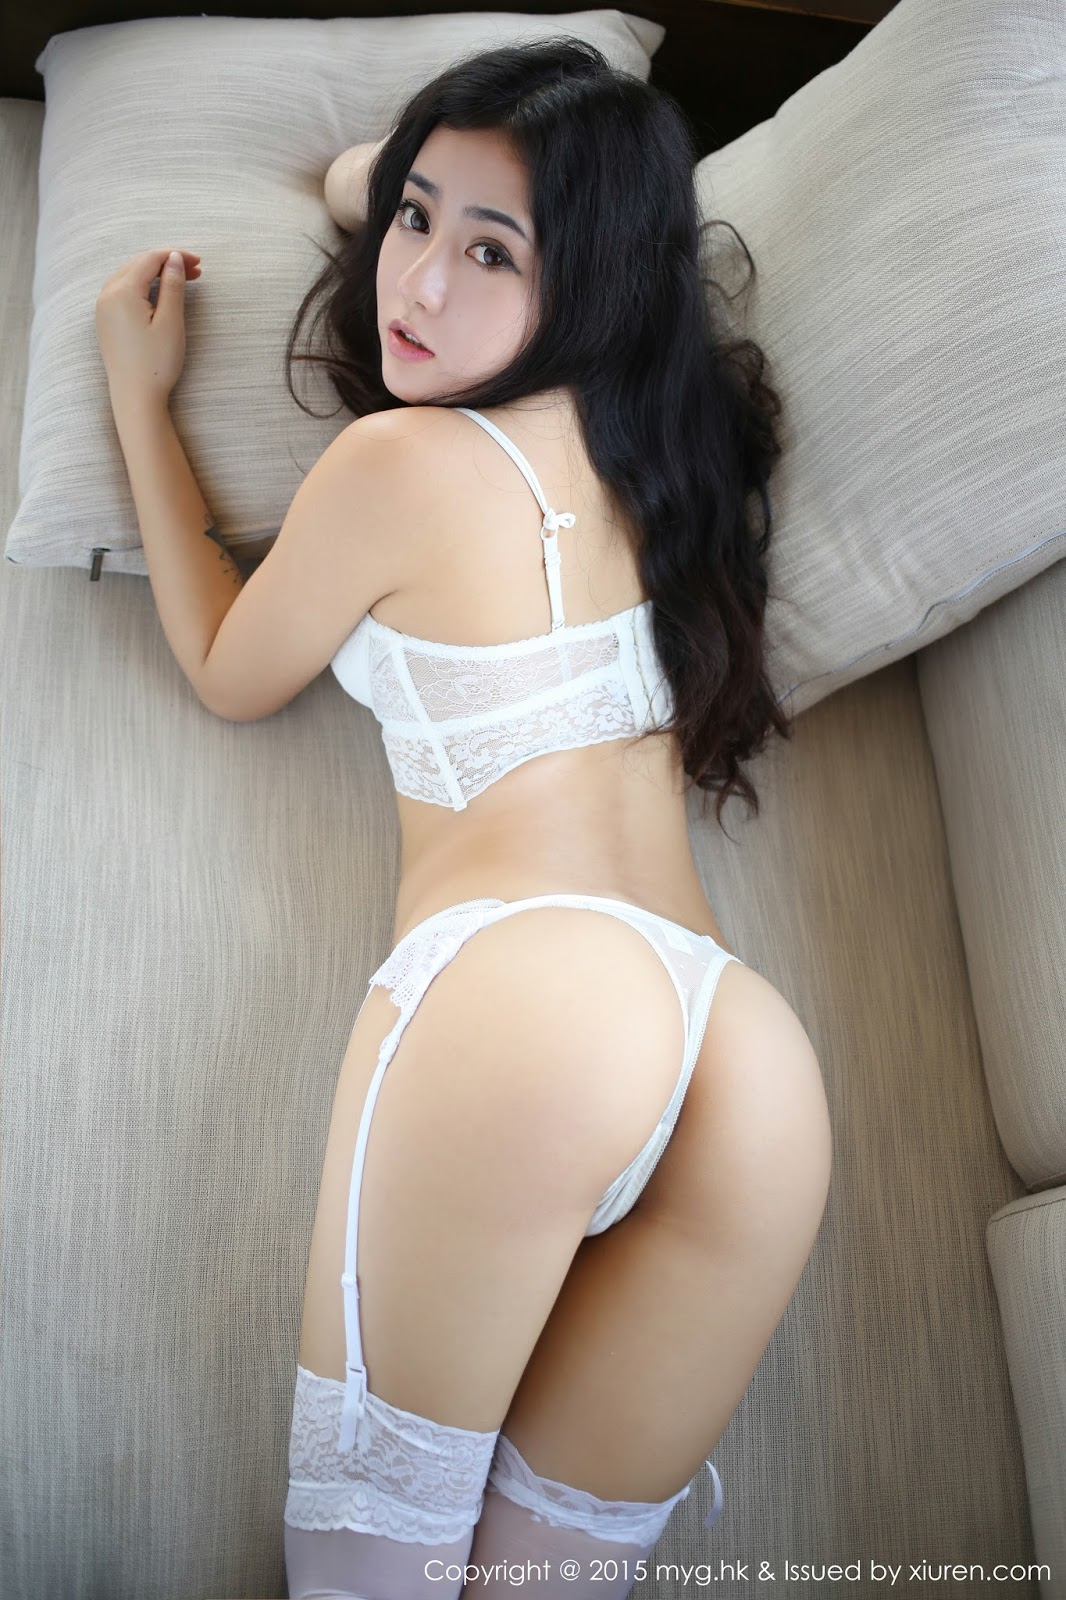 Photo mix of naughty and naked Asian girls